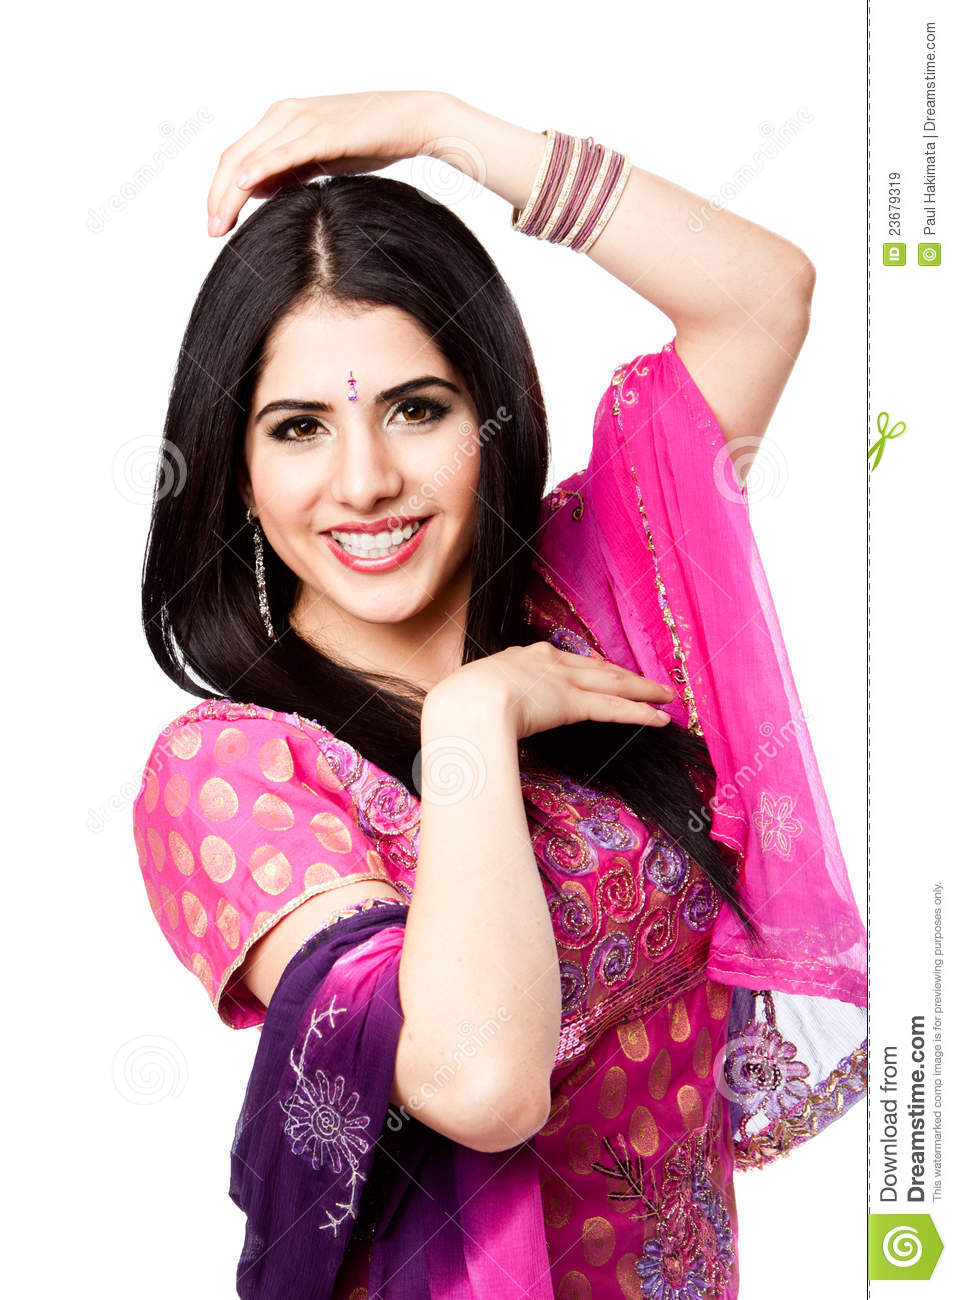 donna hindu single women Sex and the single indian perhaps it is because sexuality for a woman in the vedic tradition of hindu culture is controlled by her age and marital status.